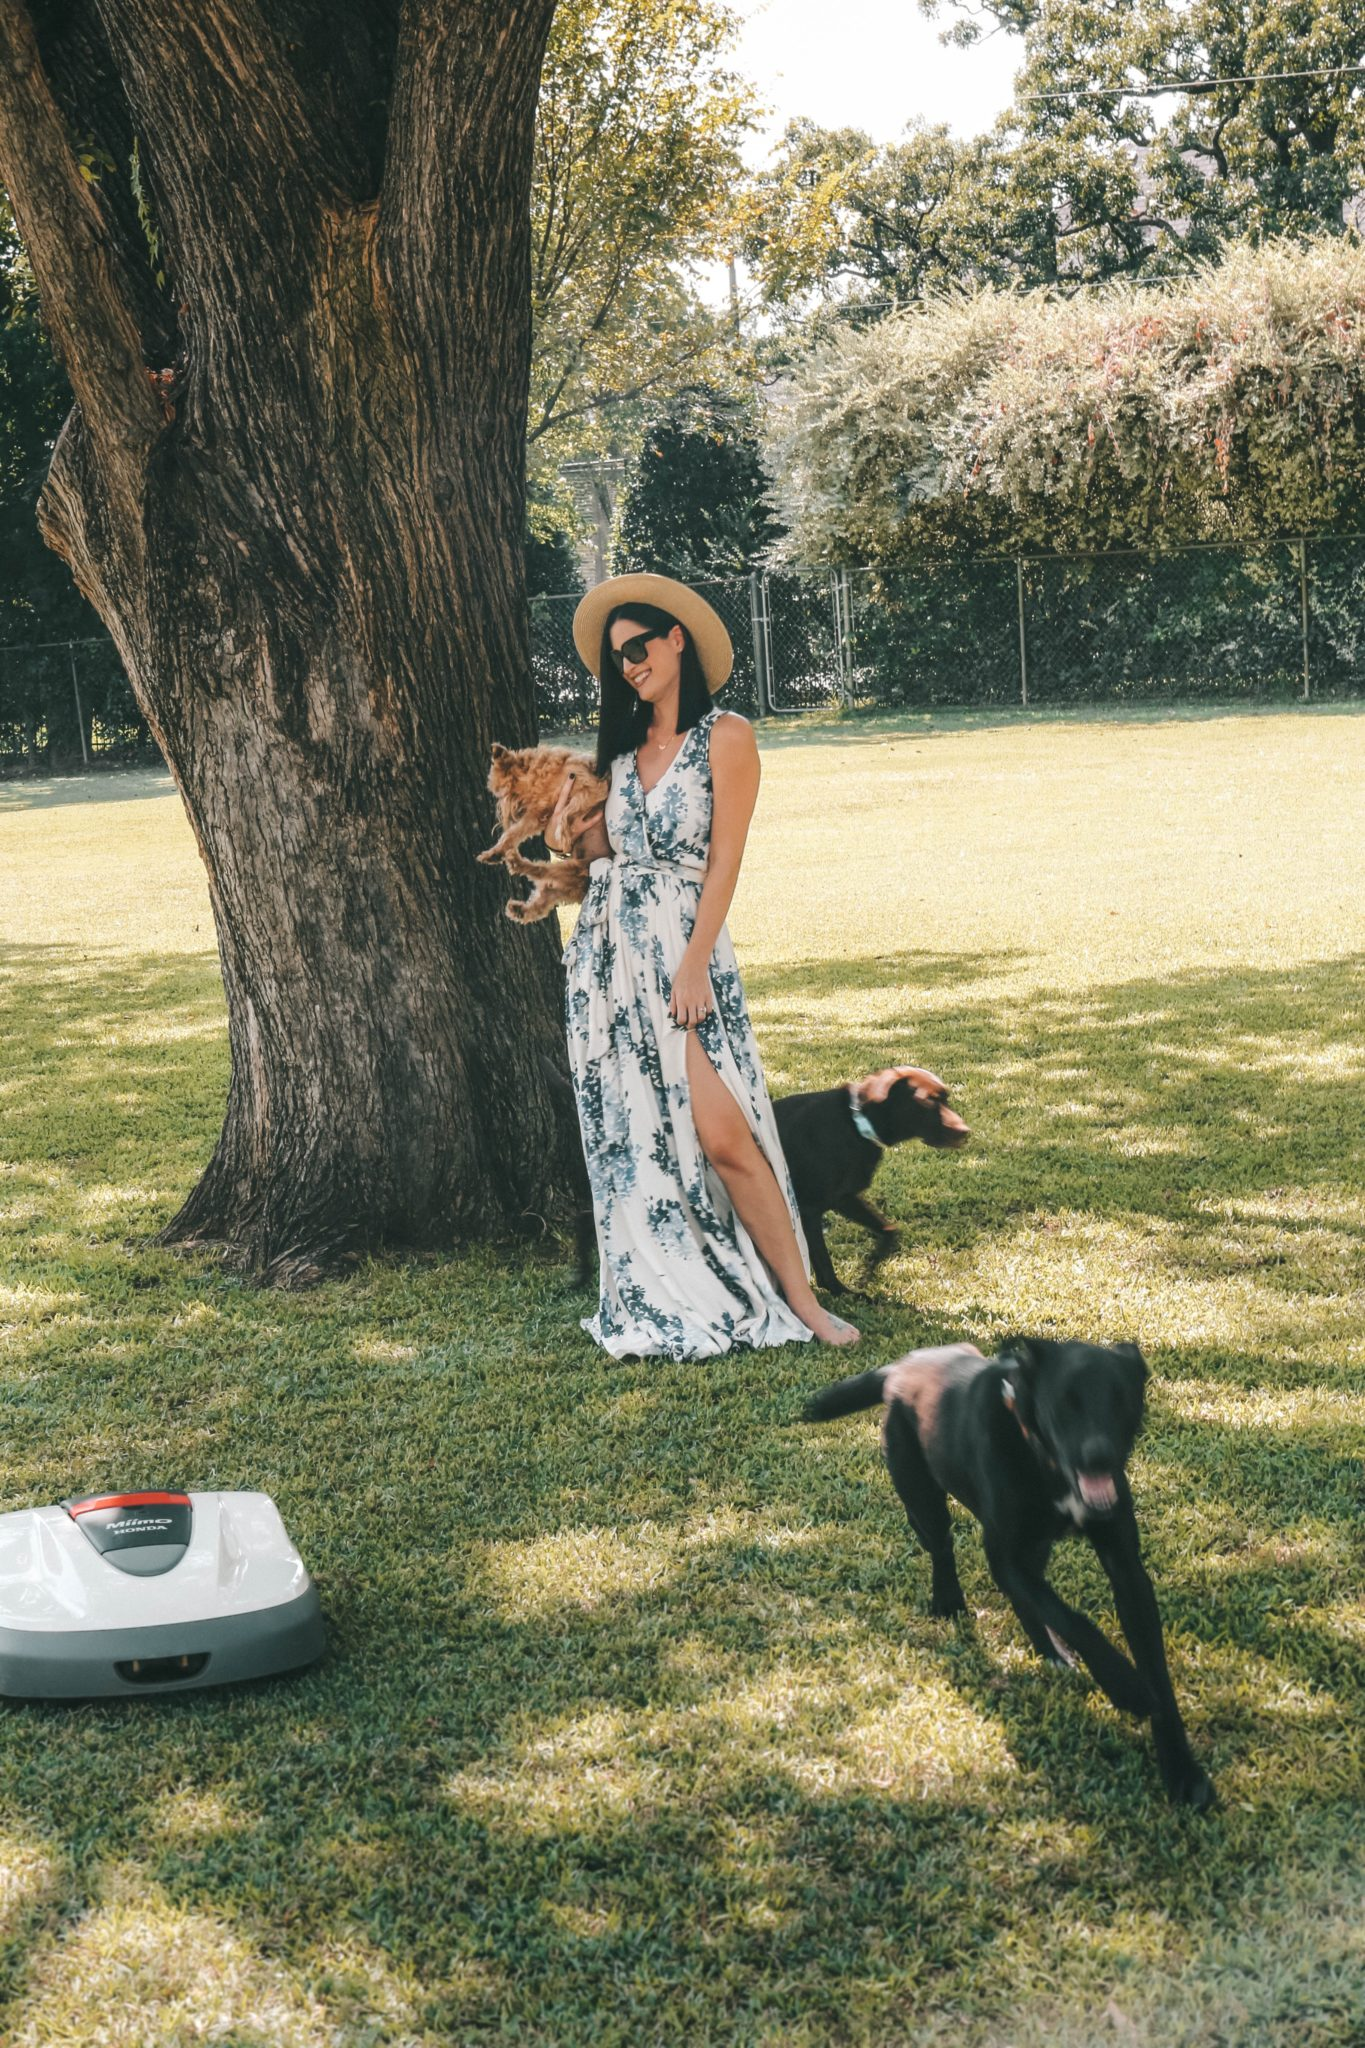 Honda Miimo Robotic Lawn Mower Review by popular Austin lifestyle blog, Dressed to Kill: image of woman and her dogs standing near the Honda Miimo Robotic Lawn Mower.